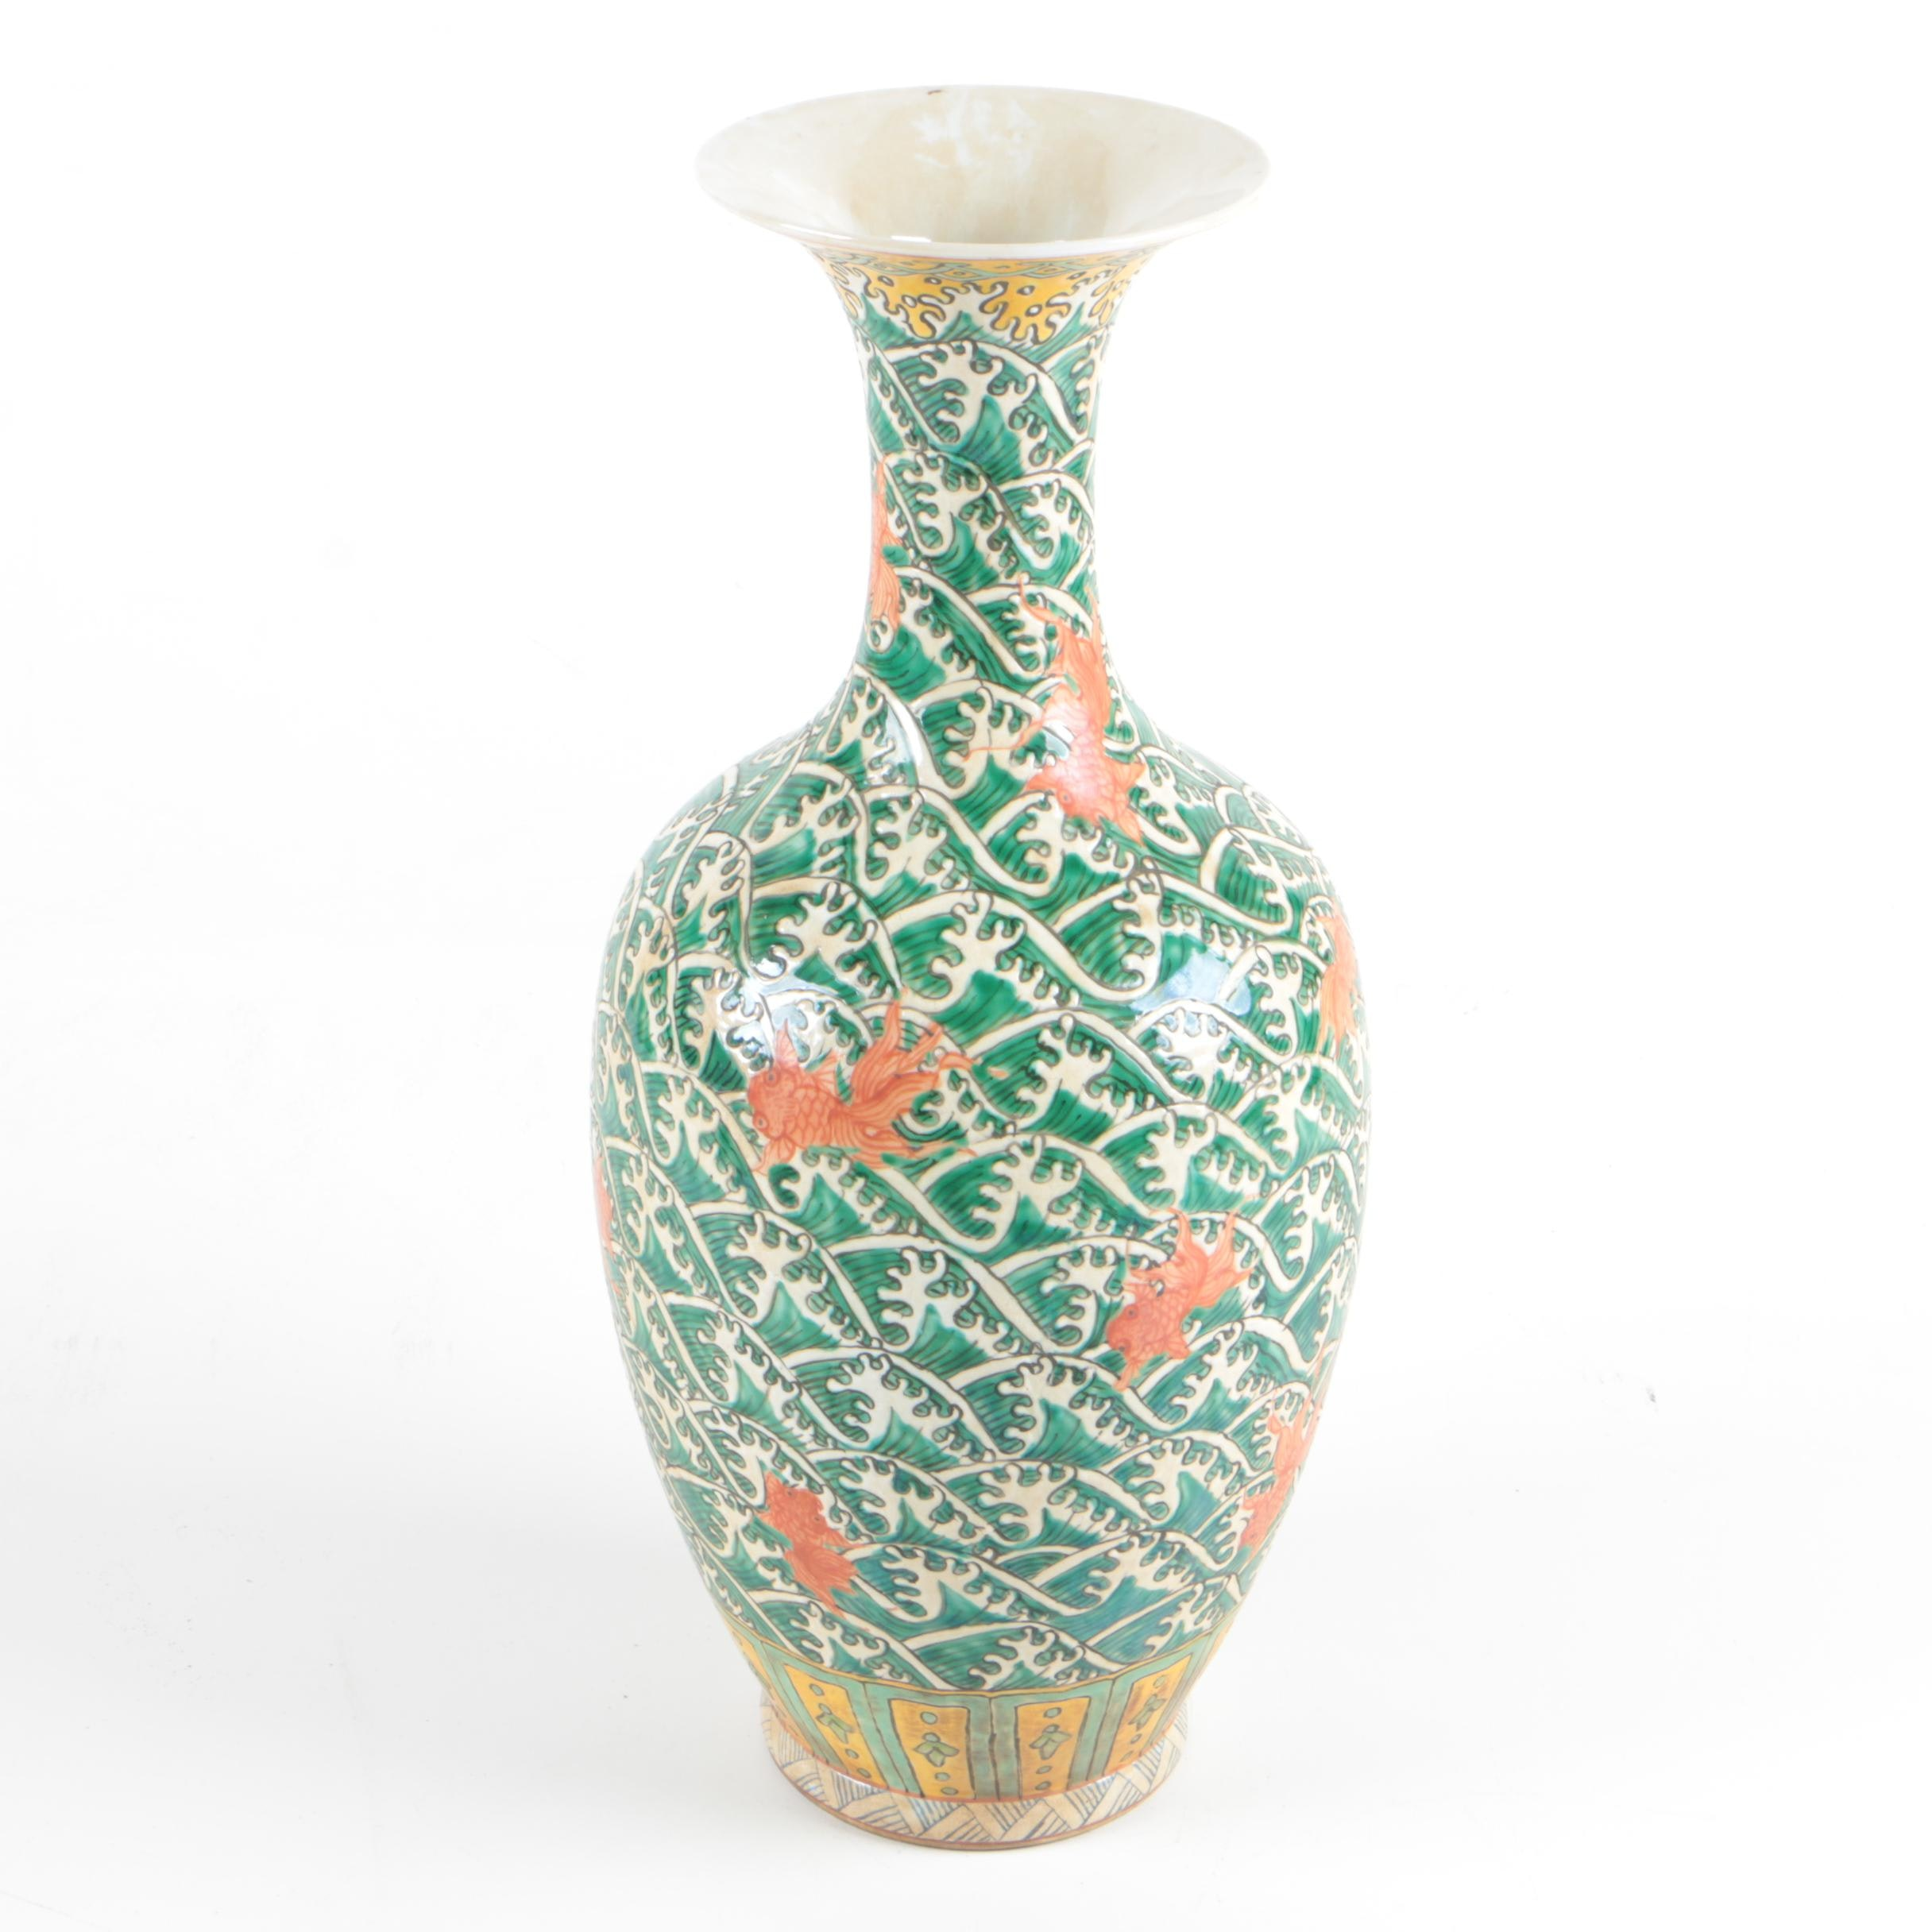 Tall Stoneware Vase in Green and Coral